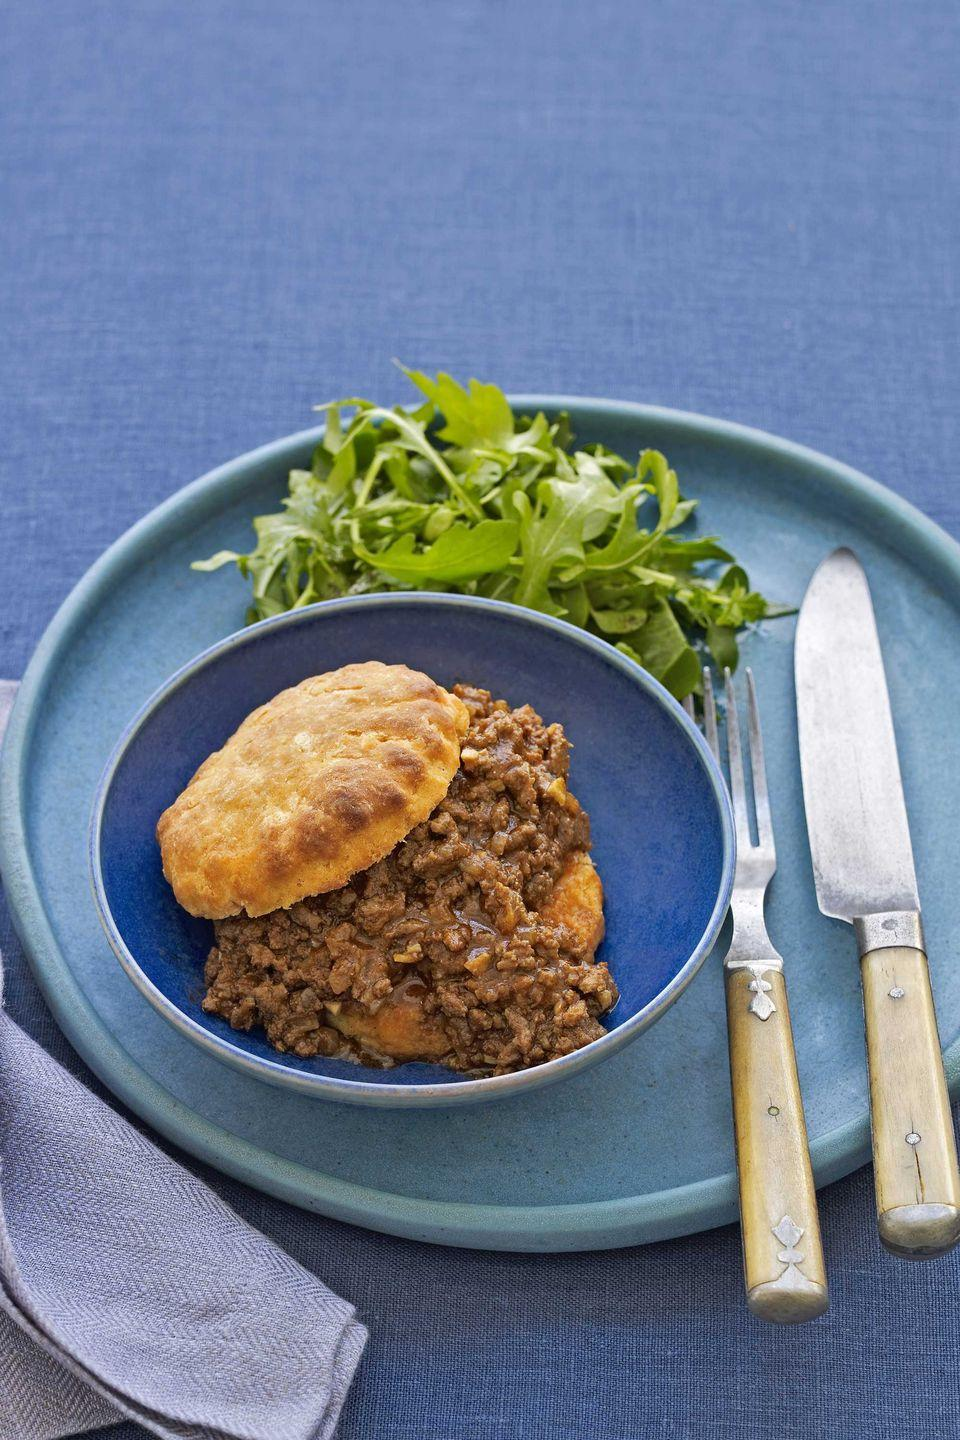 "To make this dish vegetarian, replace the meat with two 15-ounce cans of black beans, drained, then add right before the mixture is brought to a boil. <a href=""https://www.countryliving.com/food-drinks/recipes/a2697/sloppy-joes-recipe/"" rel=""nofollow noopener"" target=""_blank"" data-ylk=""slk:Get the recipe."" class=""link rapid-noclick-resp""><strong>Get the recipe.</strong></a>"